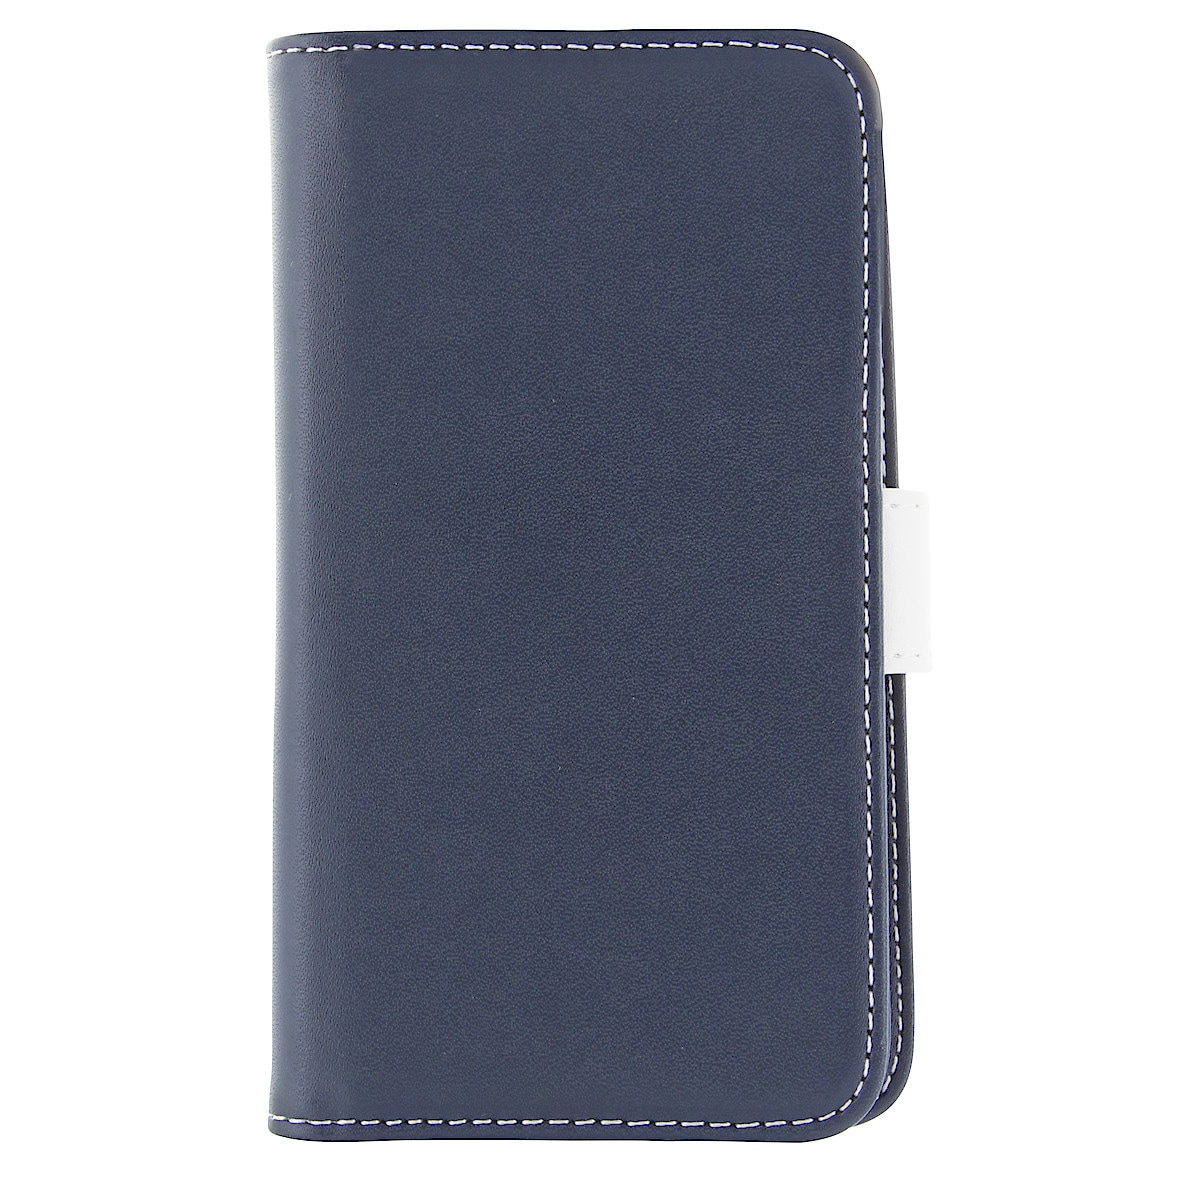 Holdit XL Wallet Case for Samsung Galaxy S5